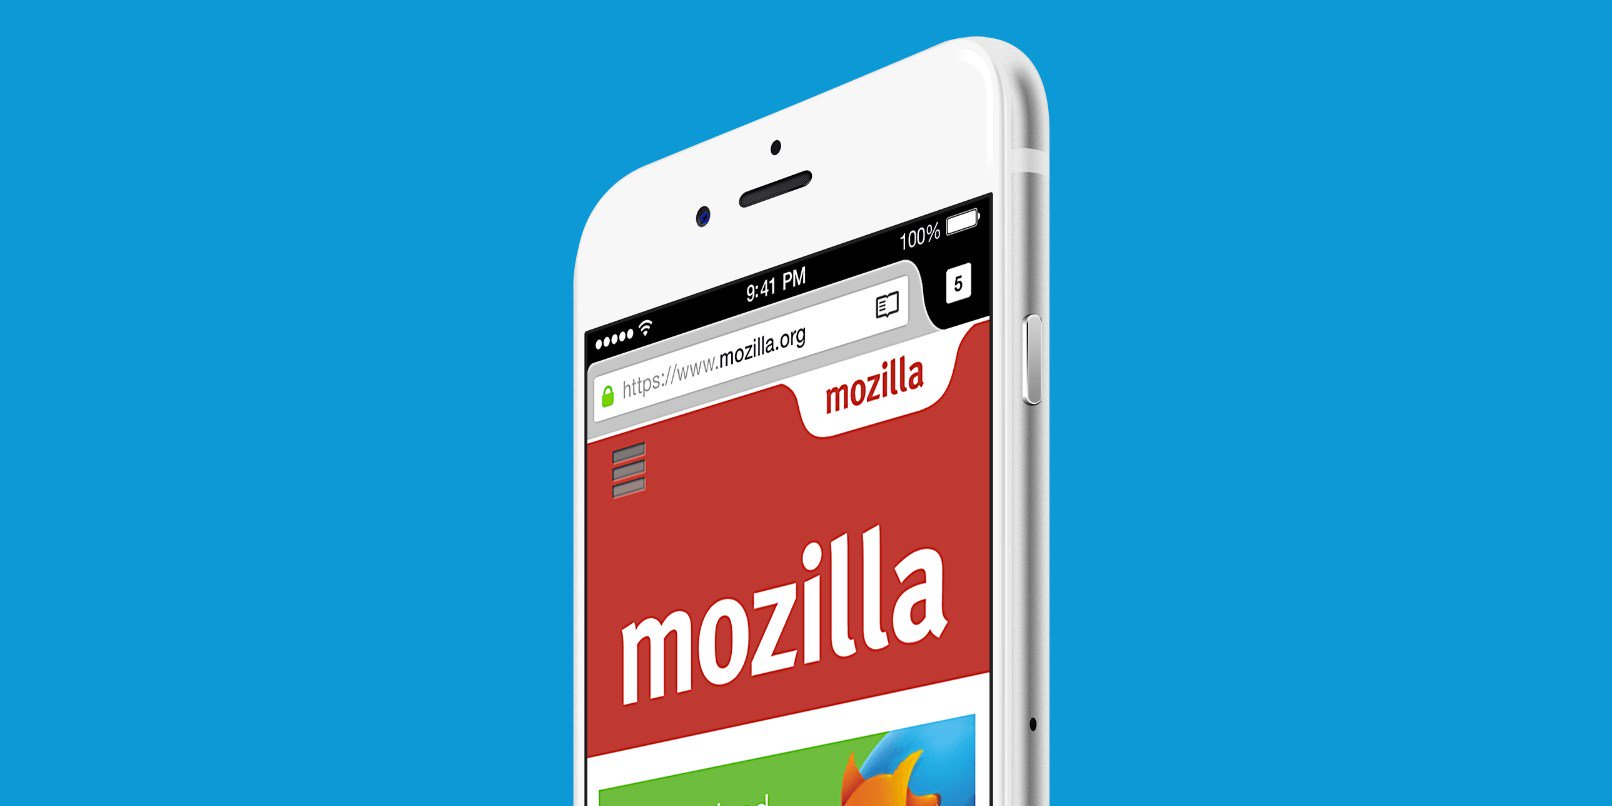 RT @TheNextWeb: Mozilla says it will thrive without Google's money https://t.co/aKPCIMlEoF https://t.co/FO1OIJwsKf